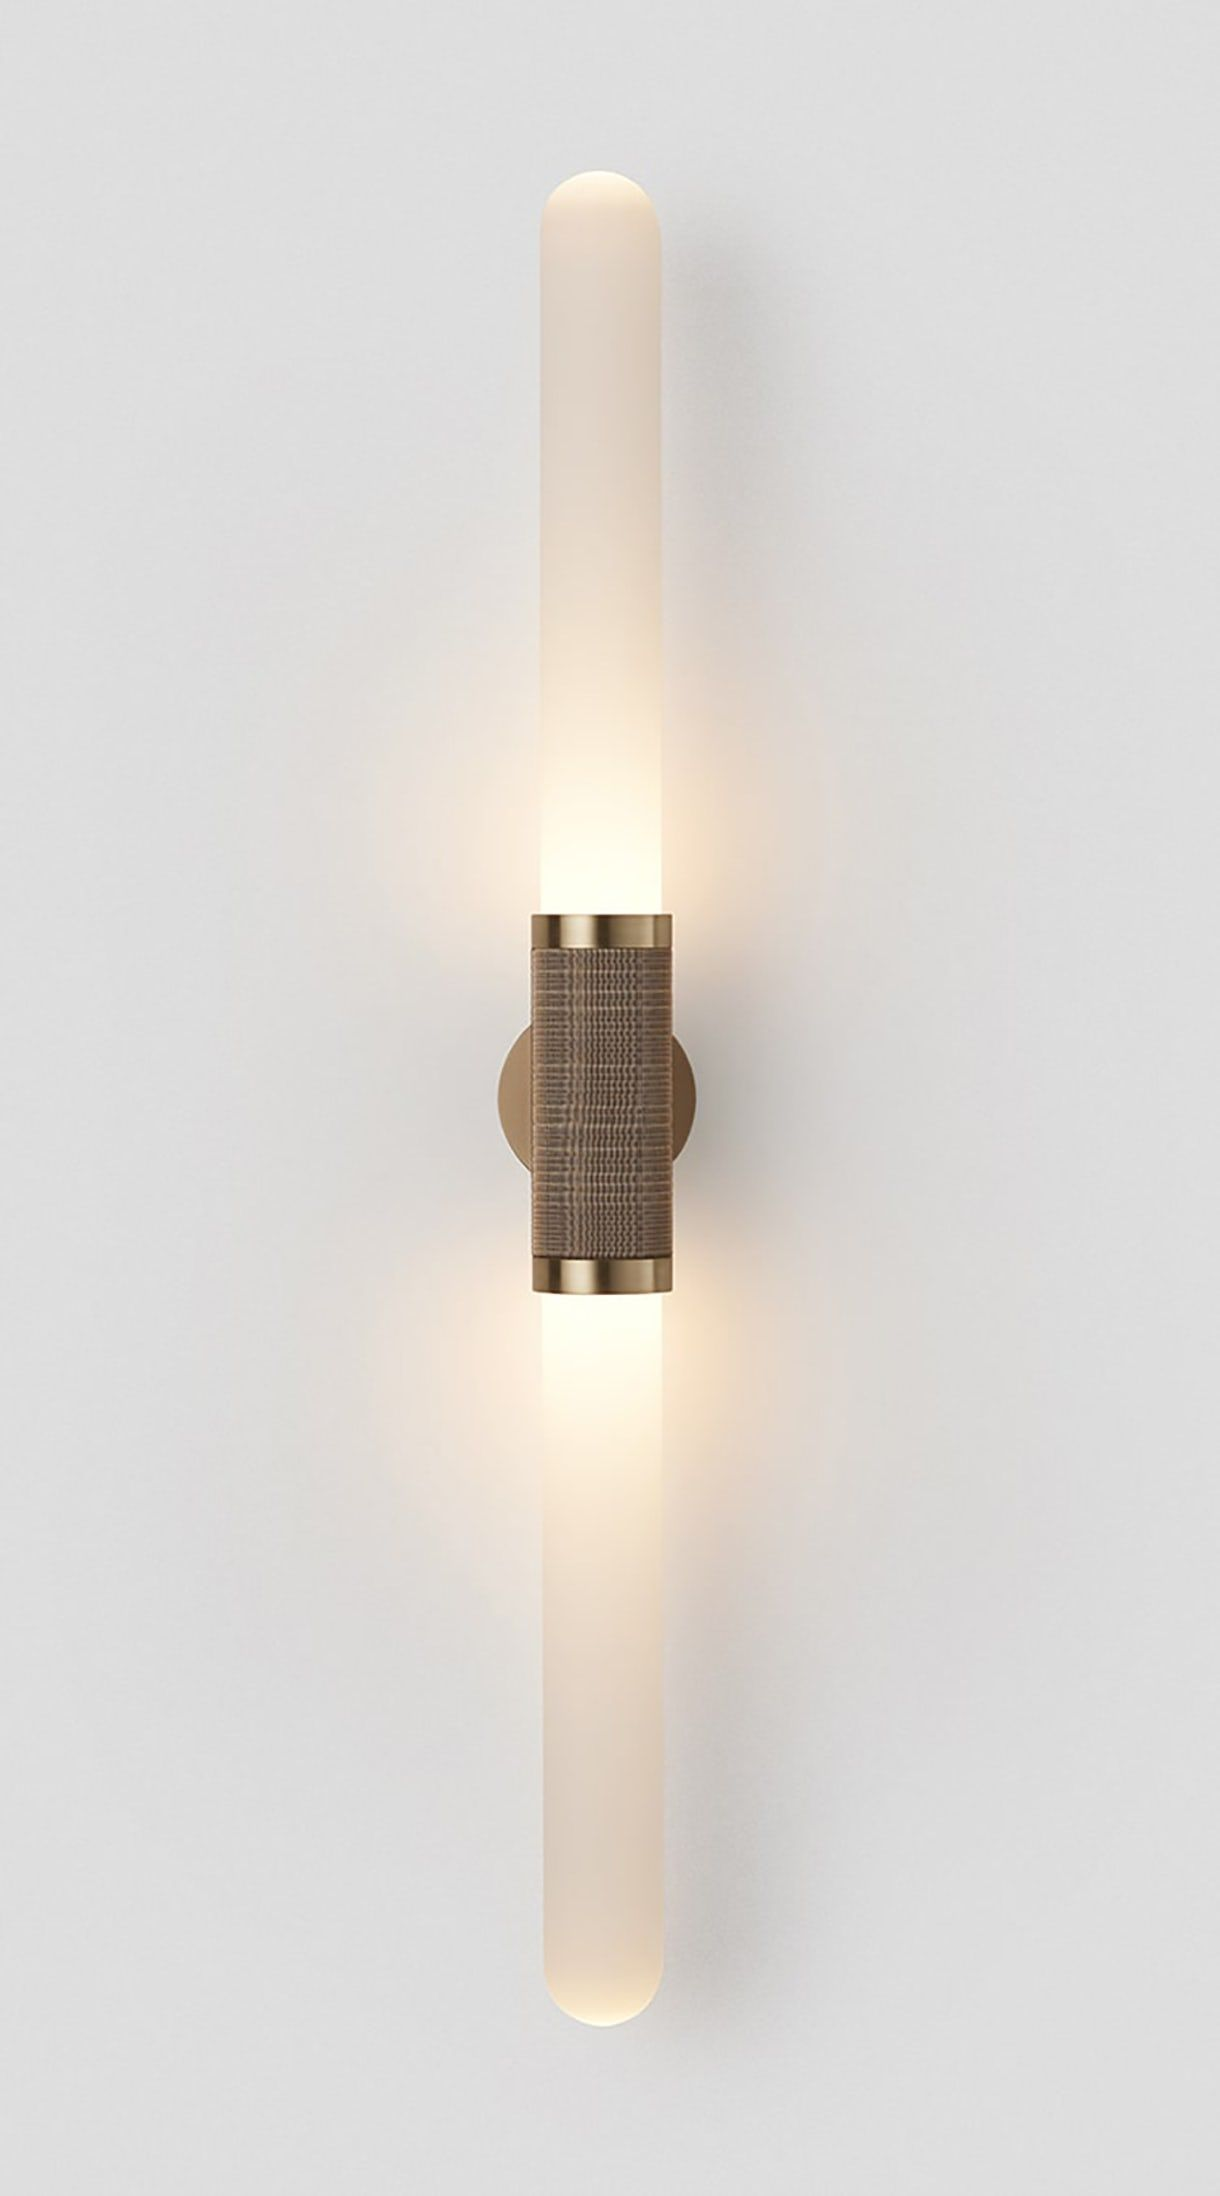 Scandal Long Wall Sconce Contemporary Transitional Glass Metal Sconce By Carlyle Collective Large Wall Lighting Sconces Wall Lamp